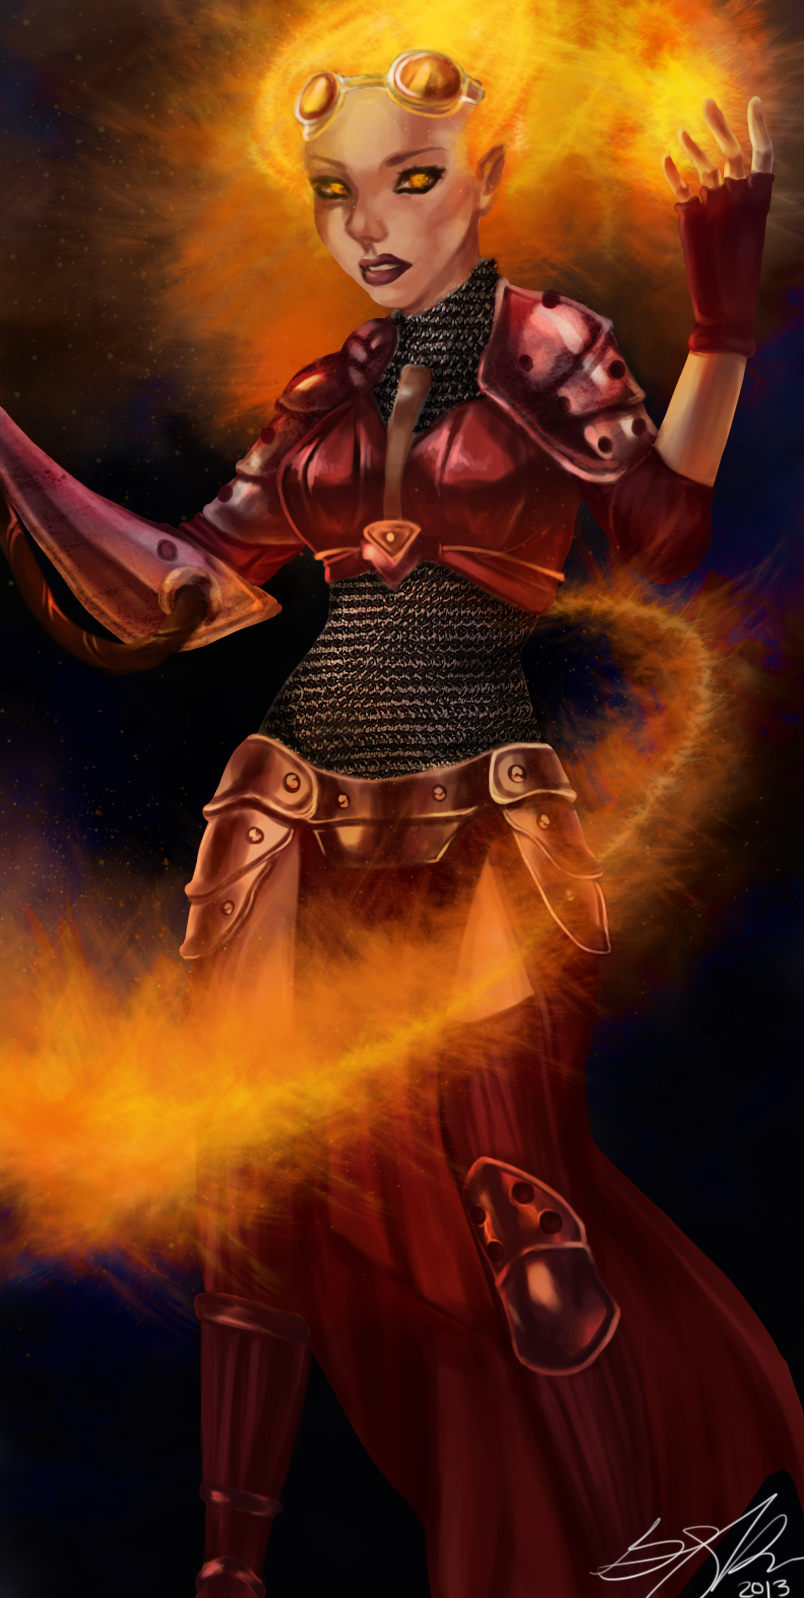 Chandra Nalaar -- Magic the Gathering by DoodlesSketchy on ... | 804 x 1598 jpeg 430kB